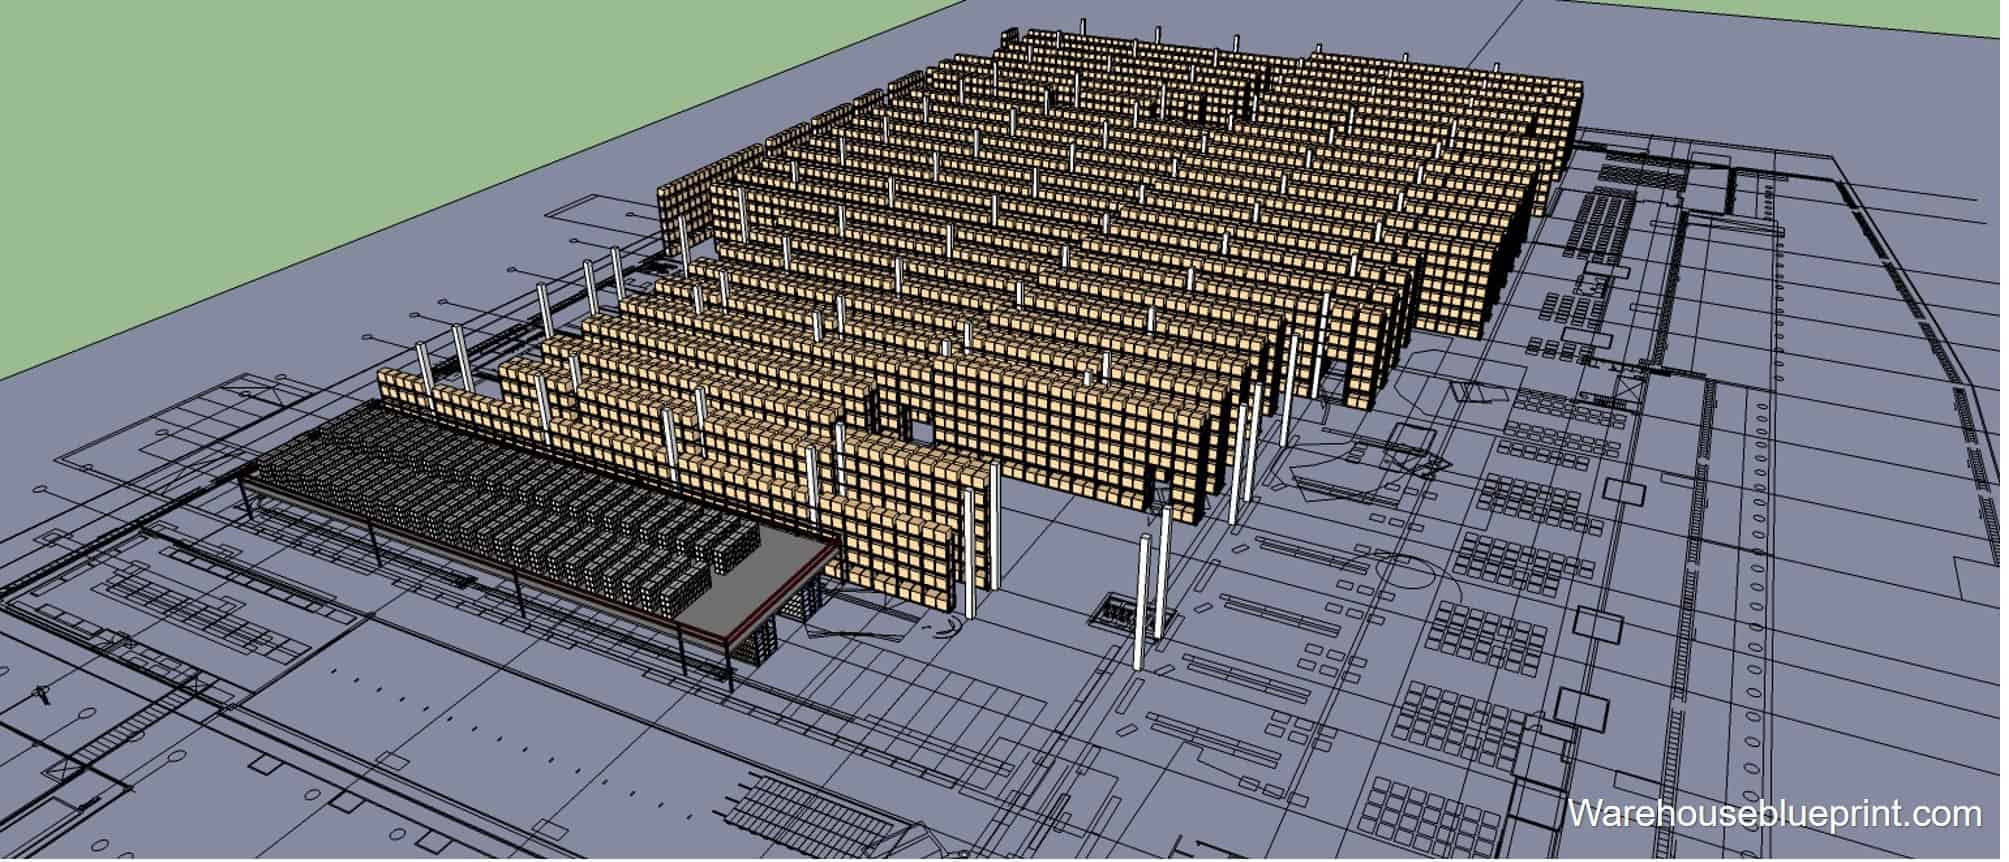 Warehouse Layout 16